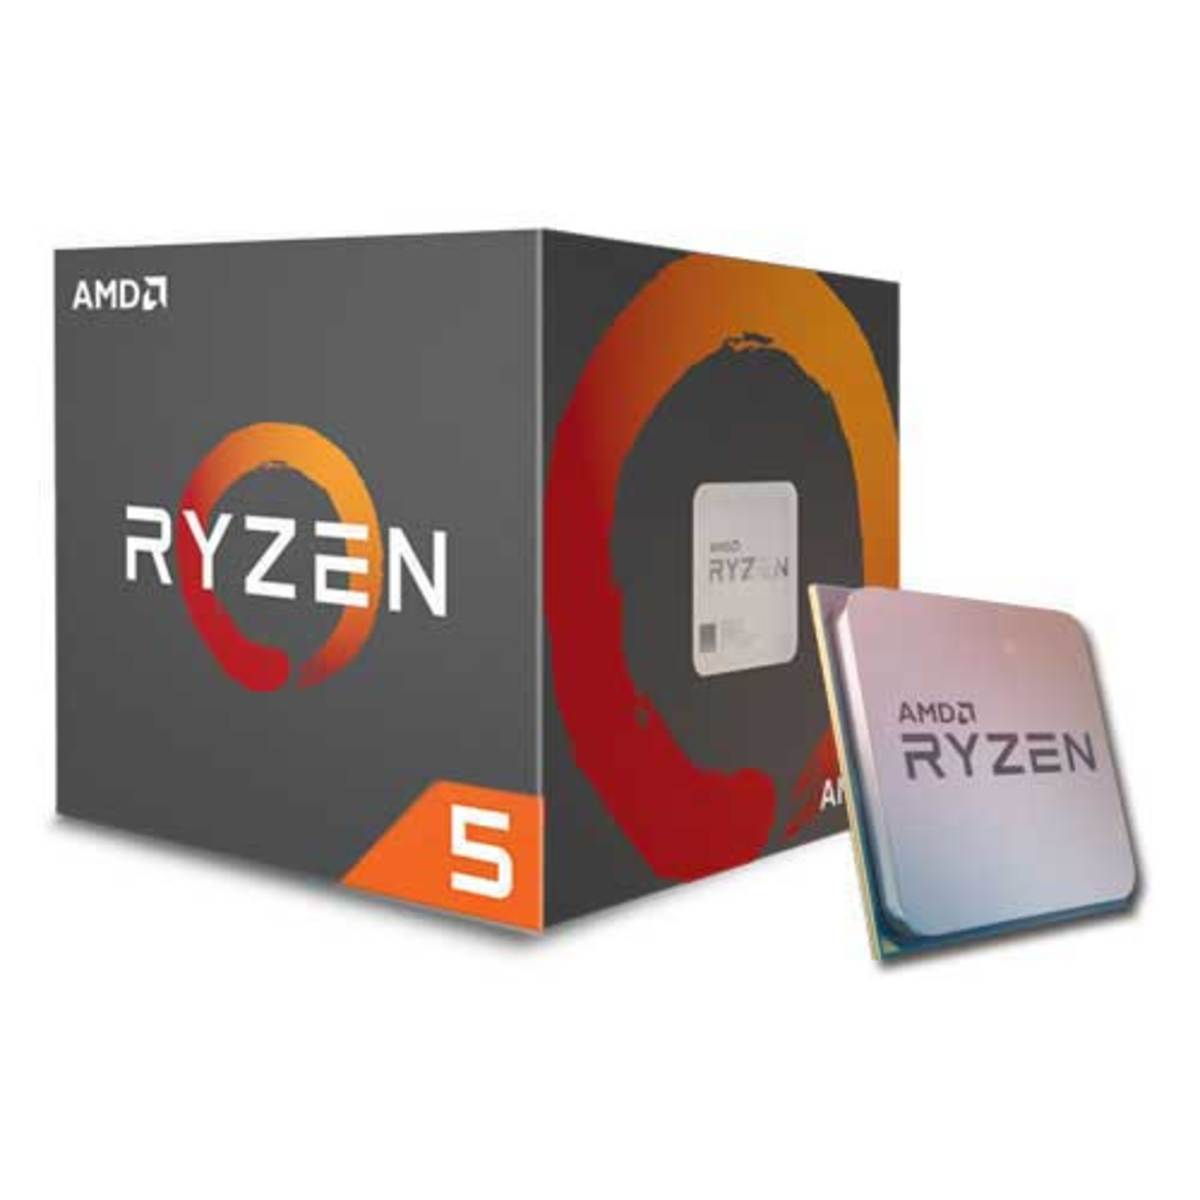 November 2017 AMD Ryzen Gaming PC Build